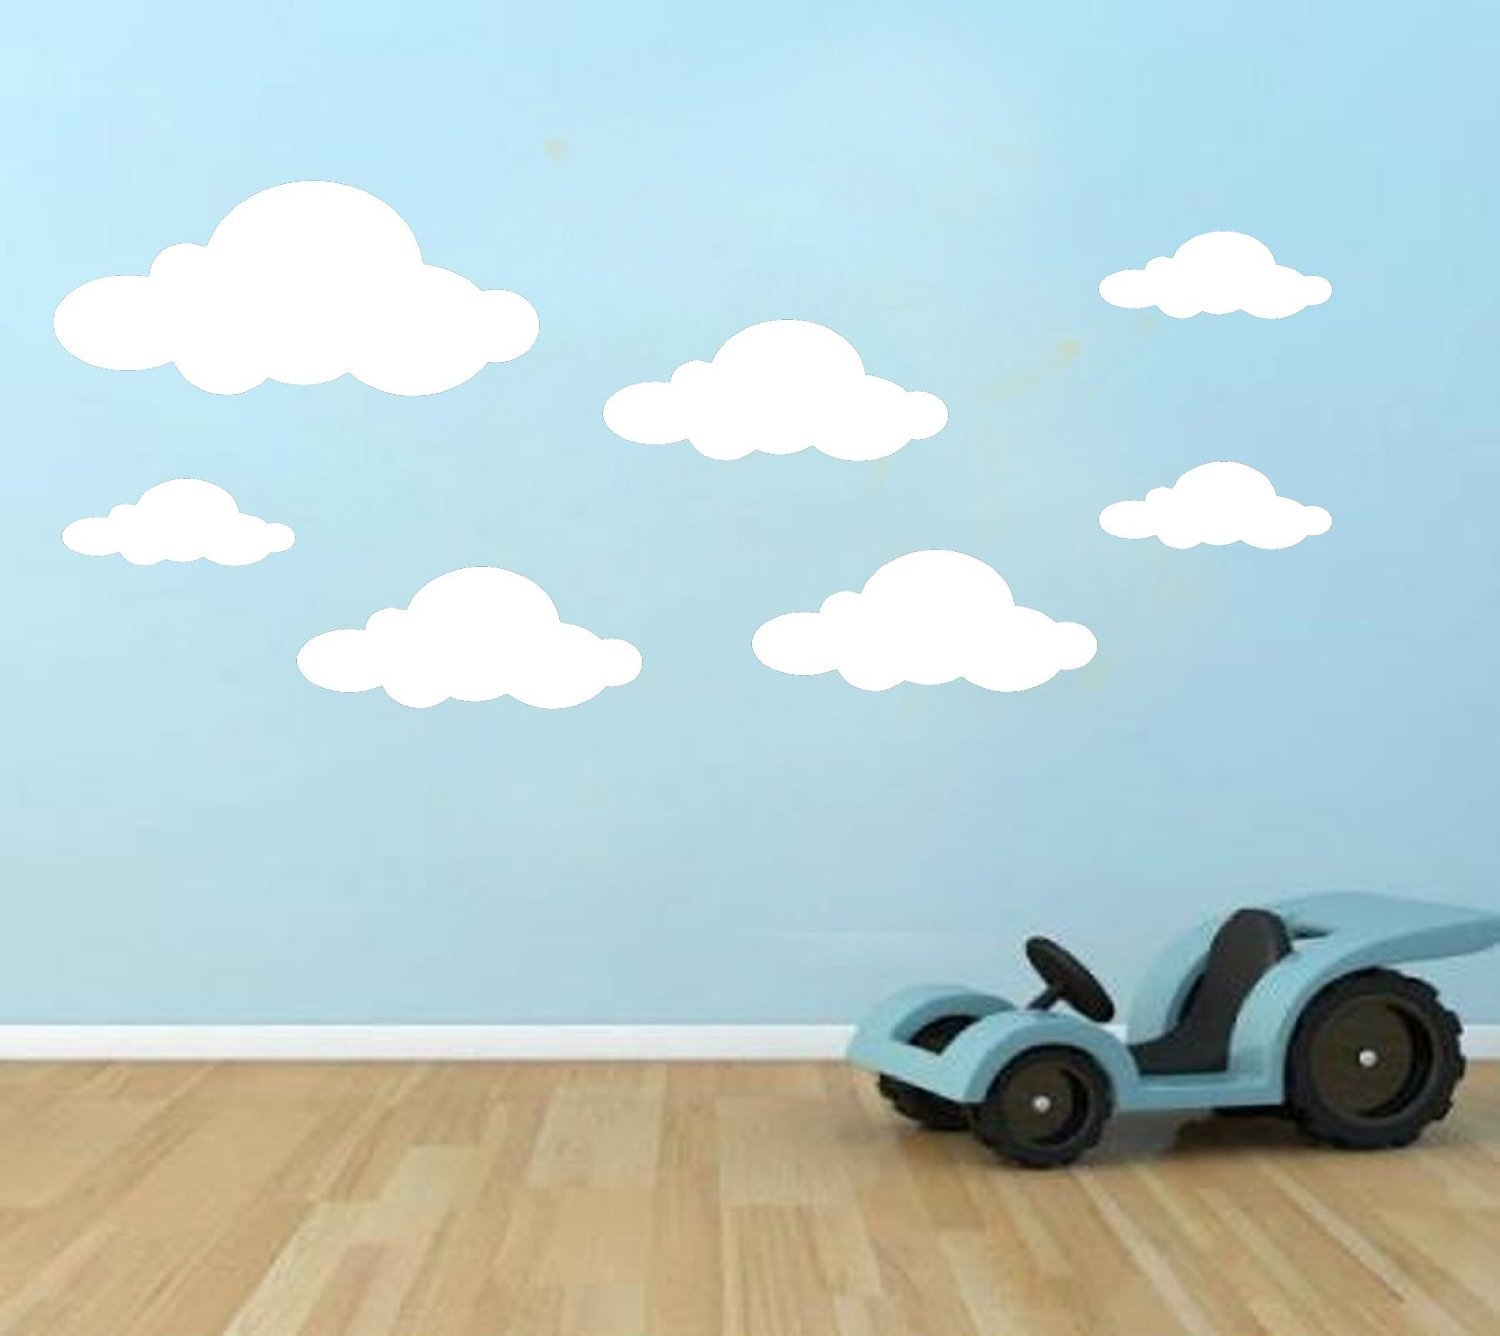 18x Cloud Wall Stickers Vinyl Decals Childrenu0027s Room Nusery Boys Girls  Transfer White: Amazon.co.uk: Kitchen U0026 Home Part 57